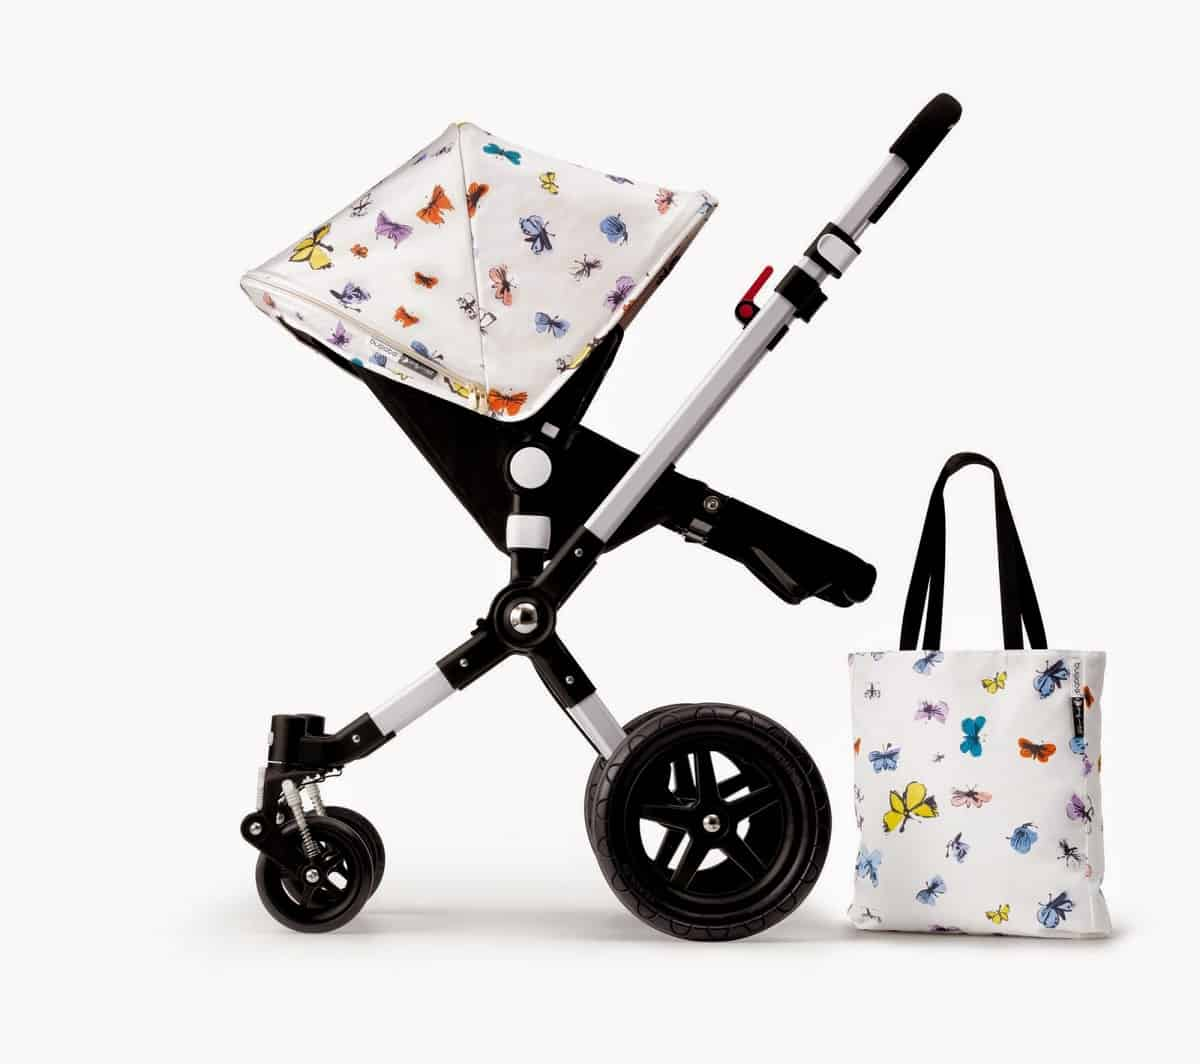 Bugaboo Retrospective Andy Warhol collection